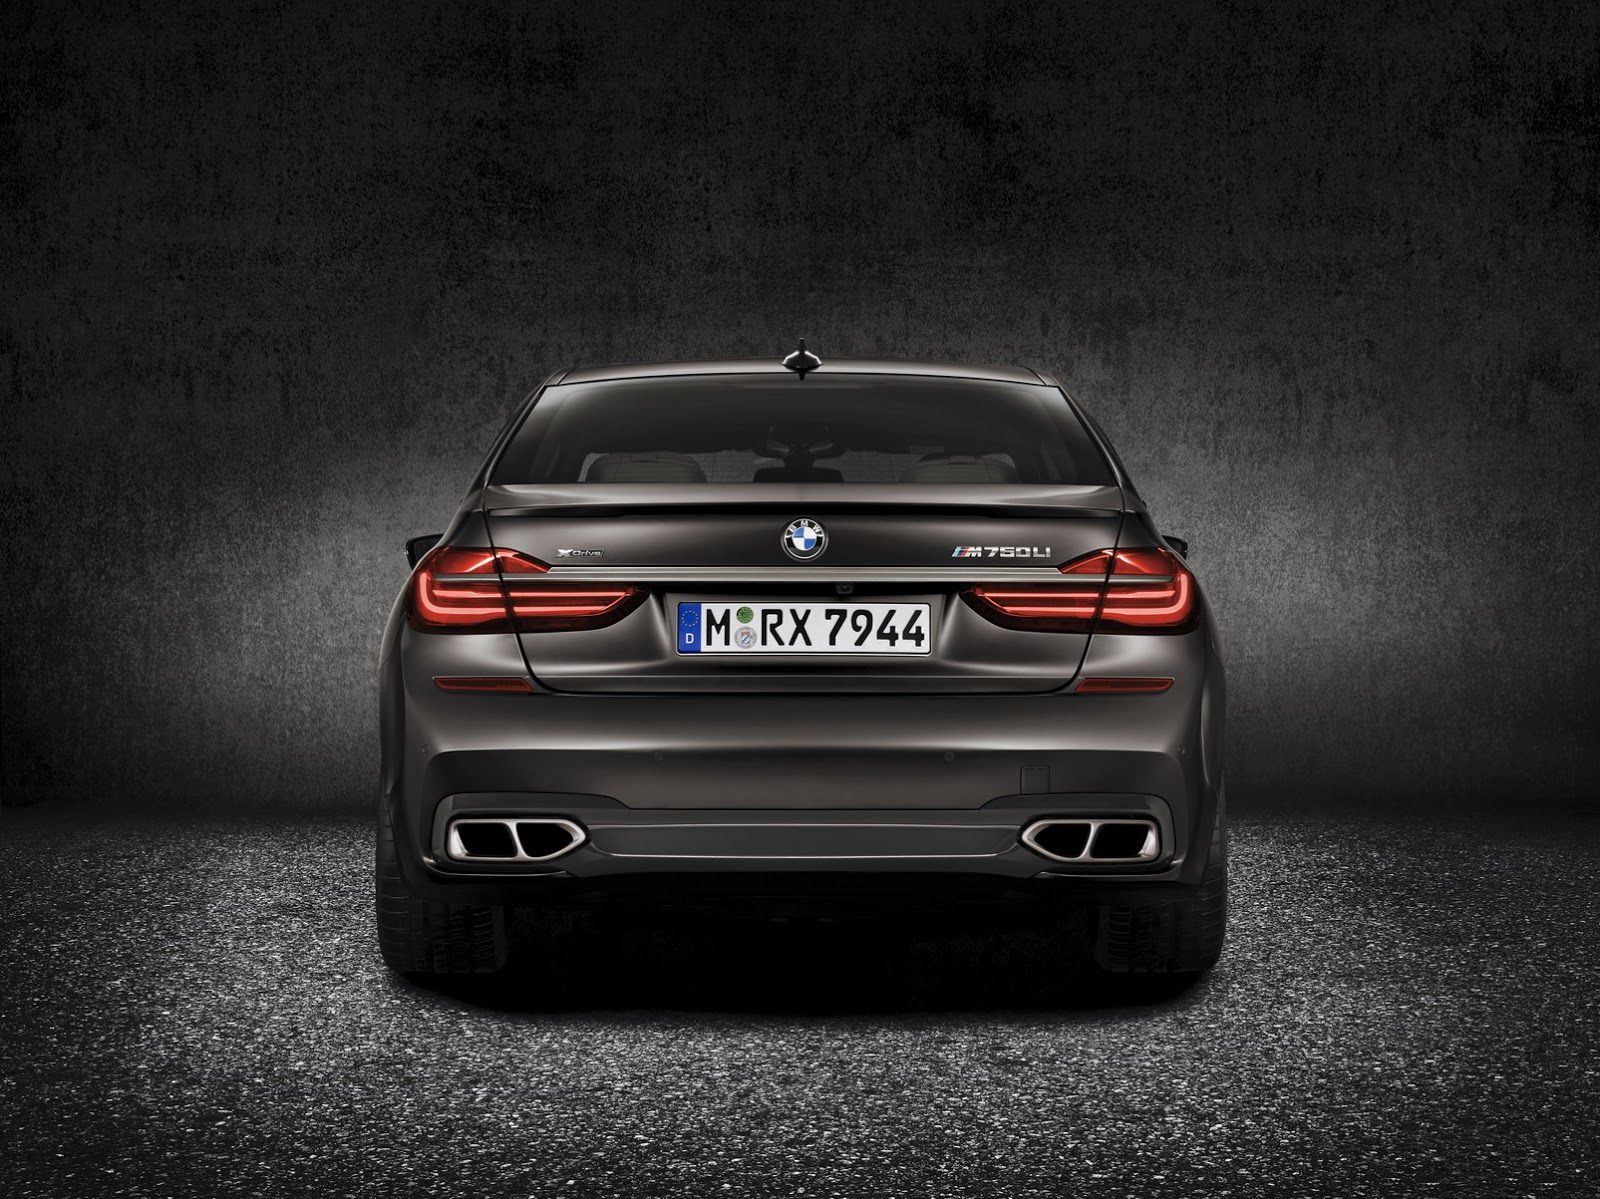 New BMW M760Li XDrive Gets Massive 66 Liter V12 Turbo With 600